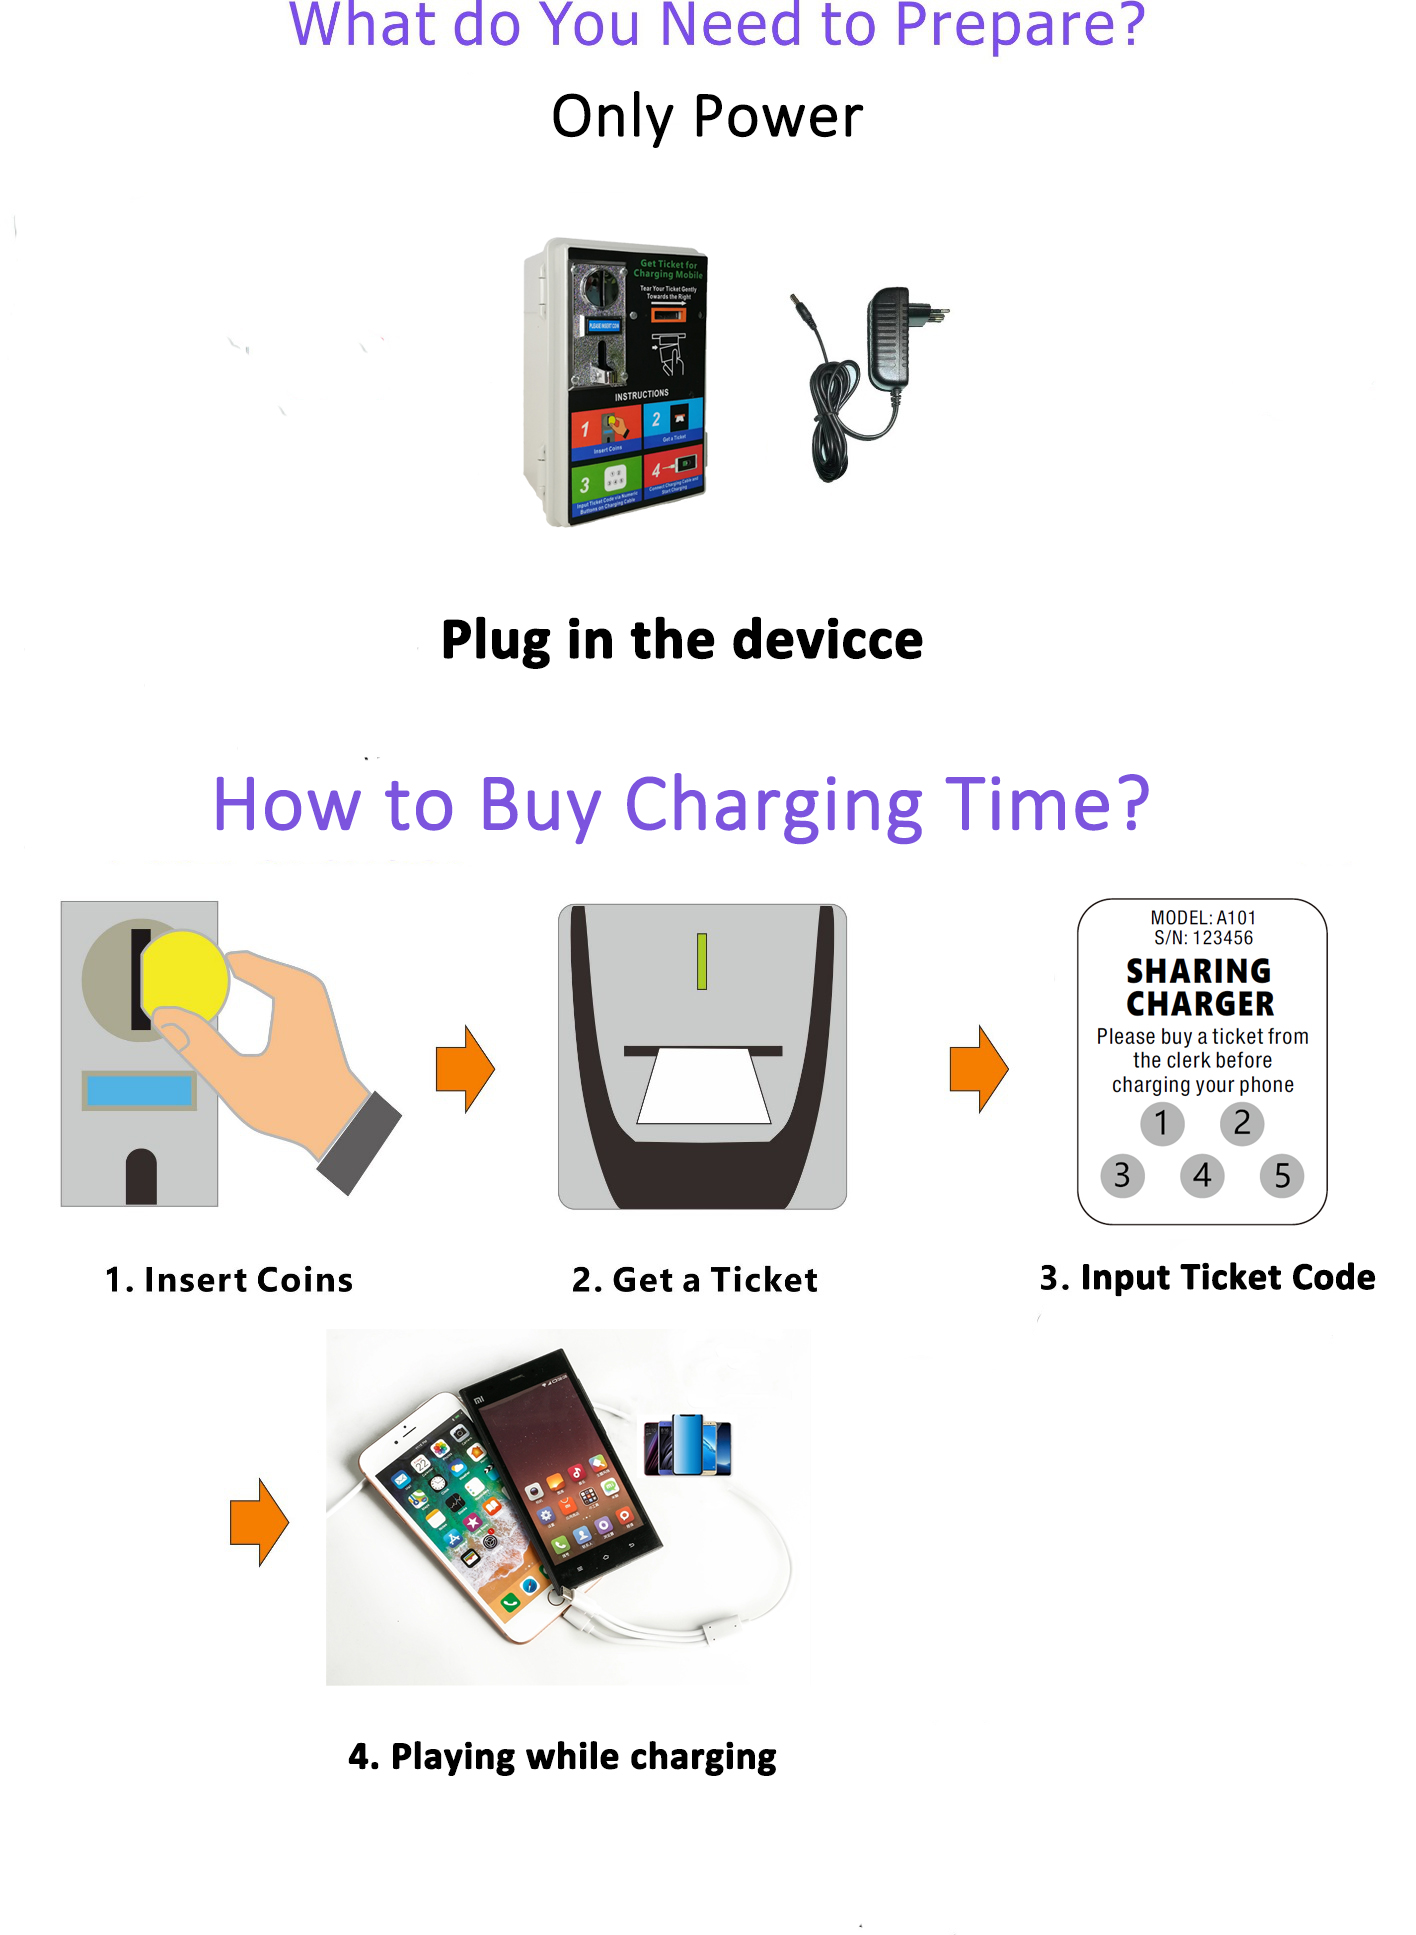 2020 New Product Idea Wall Share Charger 3 in 1 Charging Cable Add Lottery Machine in Coffee Shop